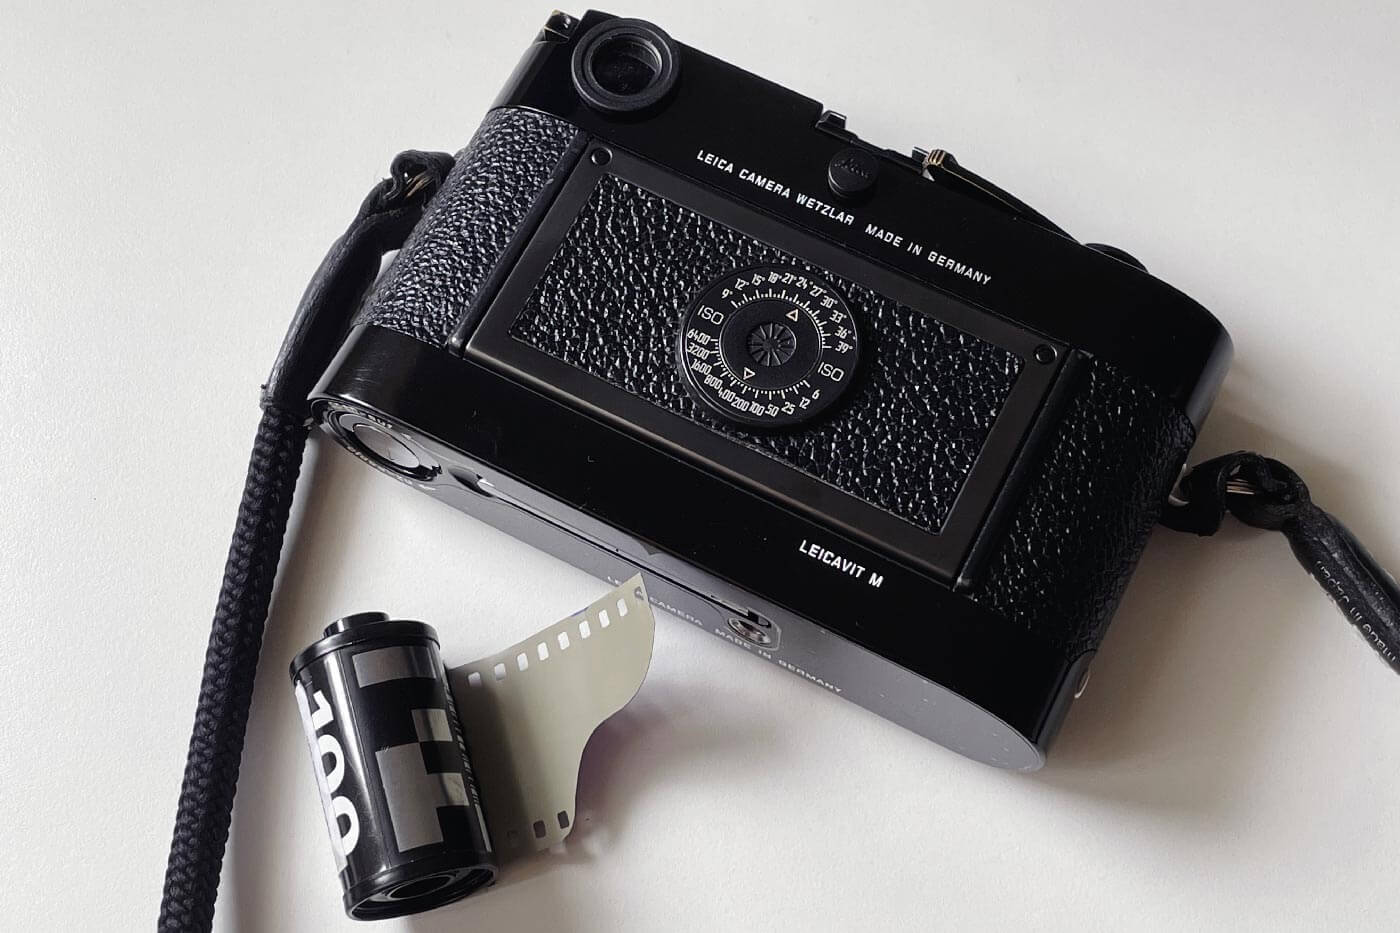 how-to-load-film-into-35mm-film-camera-135-extra-frame-properly-correct-way-best-check-beginner-tips-guide-advancing-first-frame-knob-rewind-MP-Leica